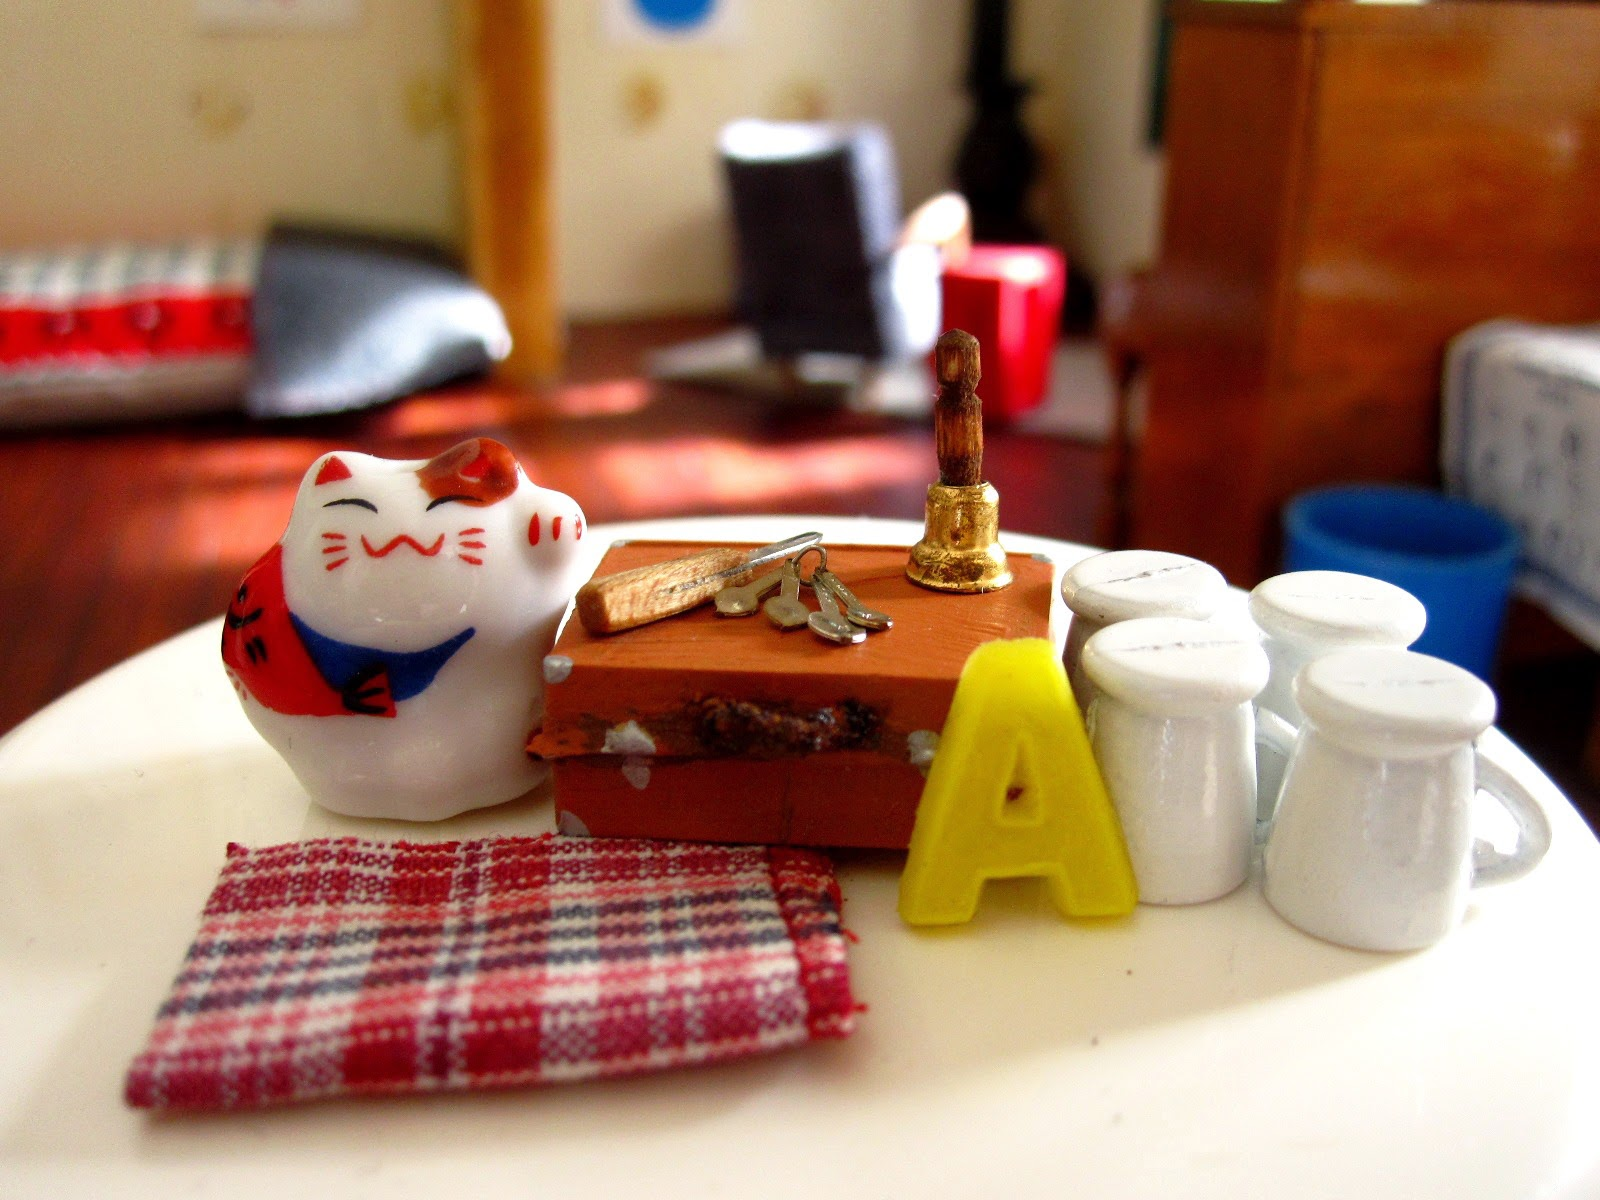 Selection of modern miniature homeware items displayed on a tabletop, including a tea towel, set of mugs, old school case, bell, letter A and cat ornament.